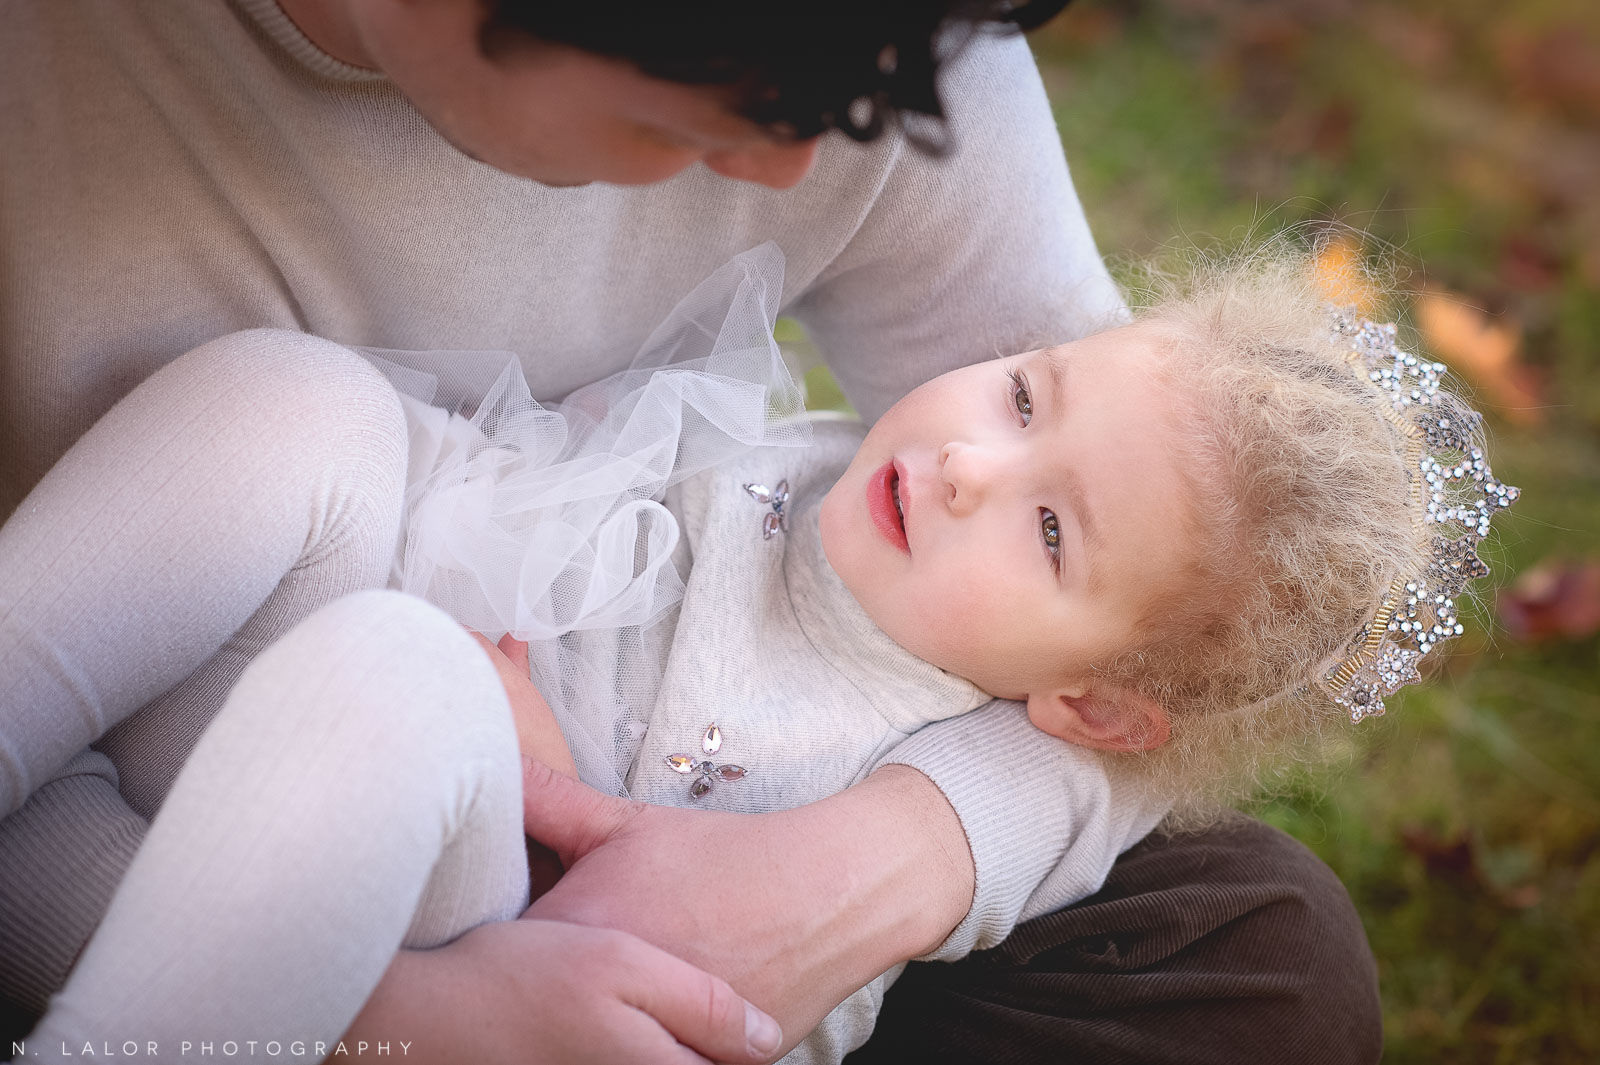 nlalor-photography-2014-styled-family-life-new-canaan-nature-center-fall-16.jpg